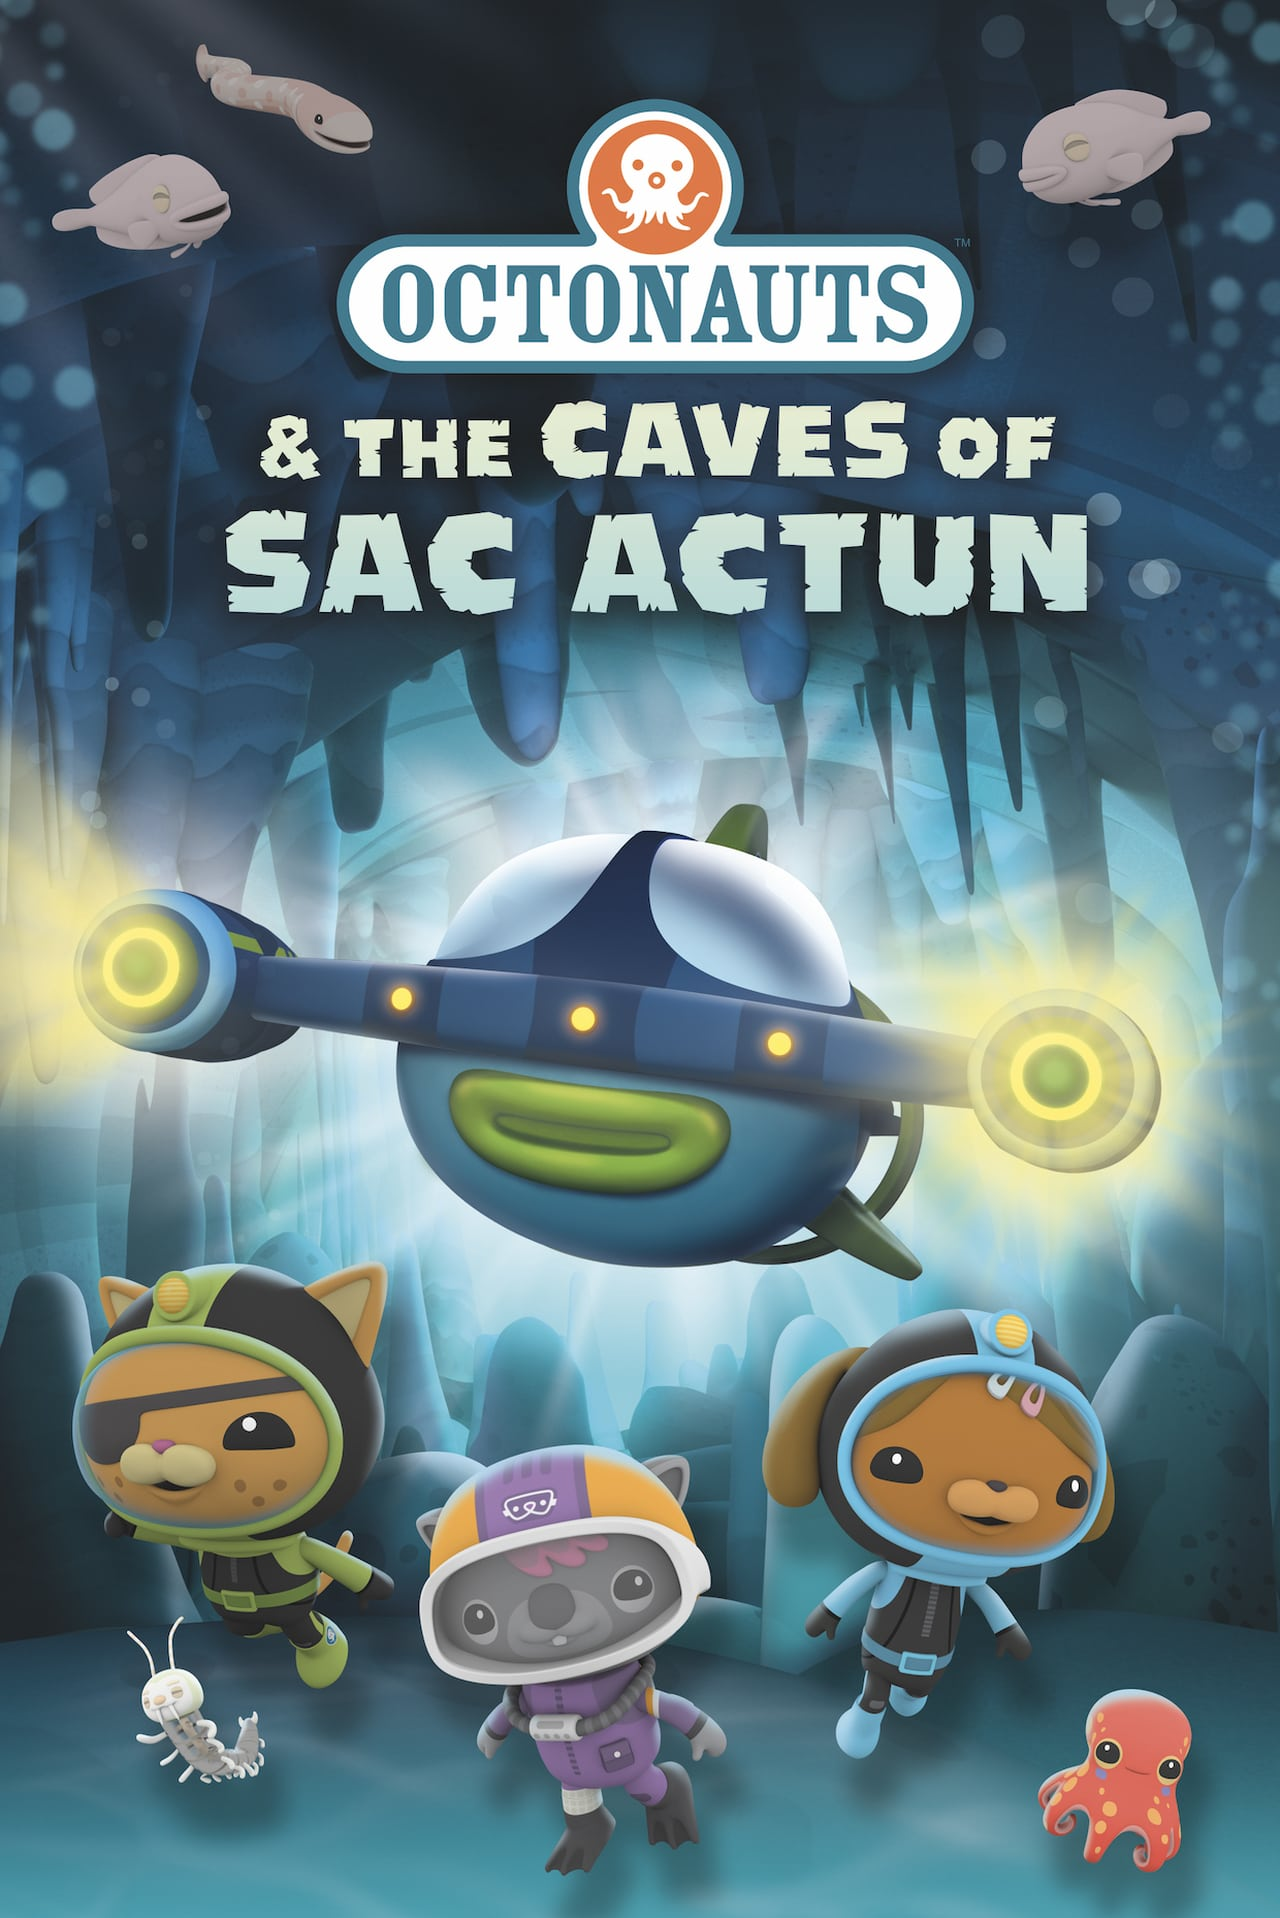 Octonautlar ve Sac Actun Mağaraları – Octonauts and the Caves of Sac Actun (2020)